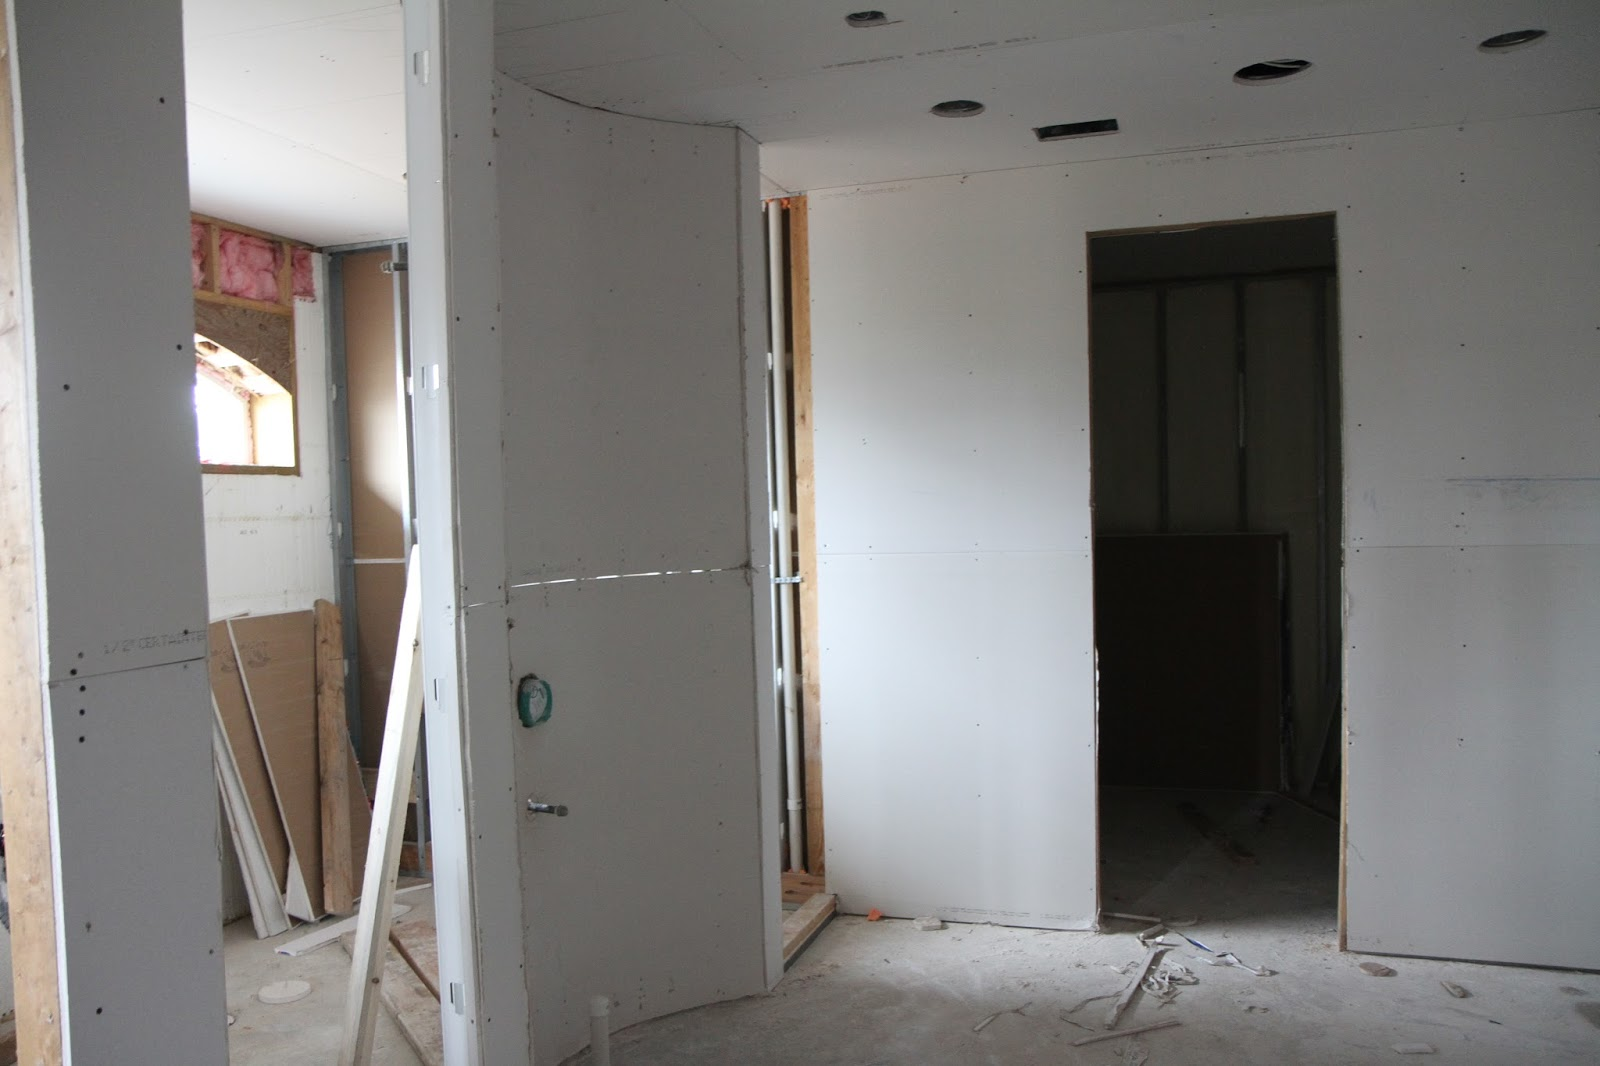 Our Lake Fortress: Drywall begins